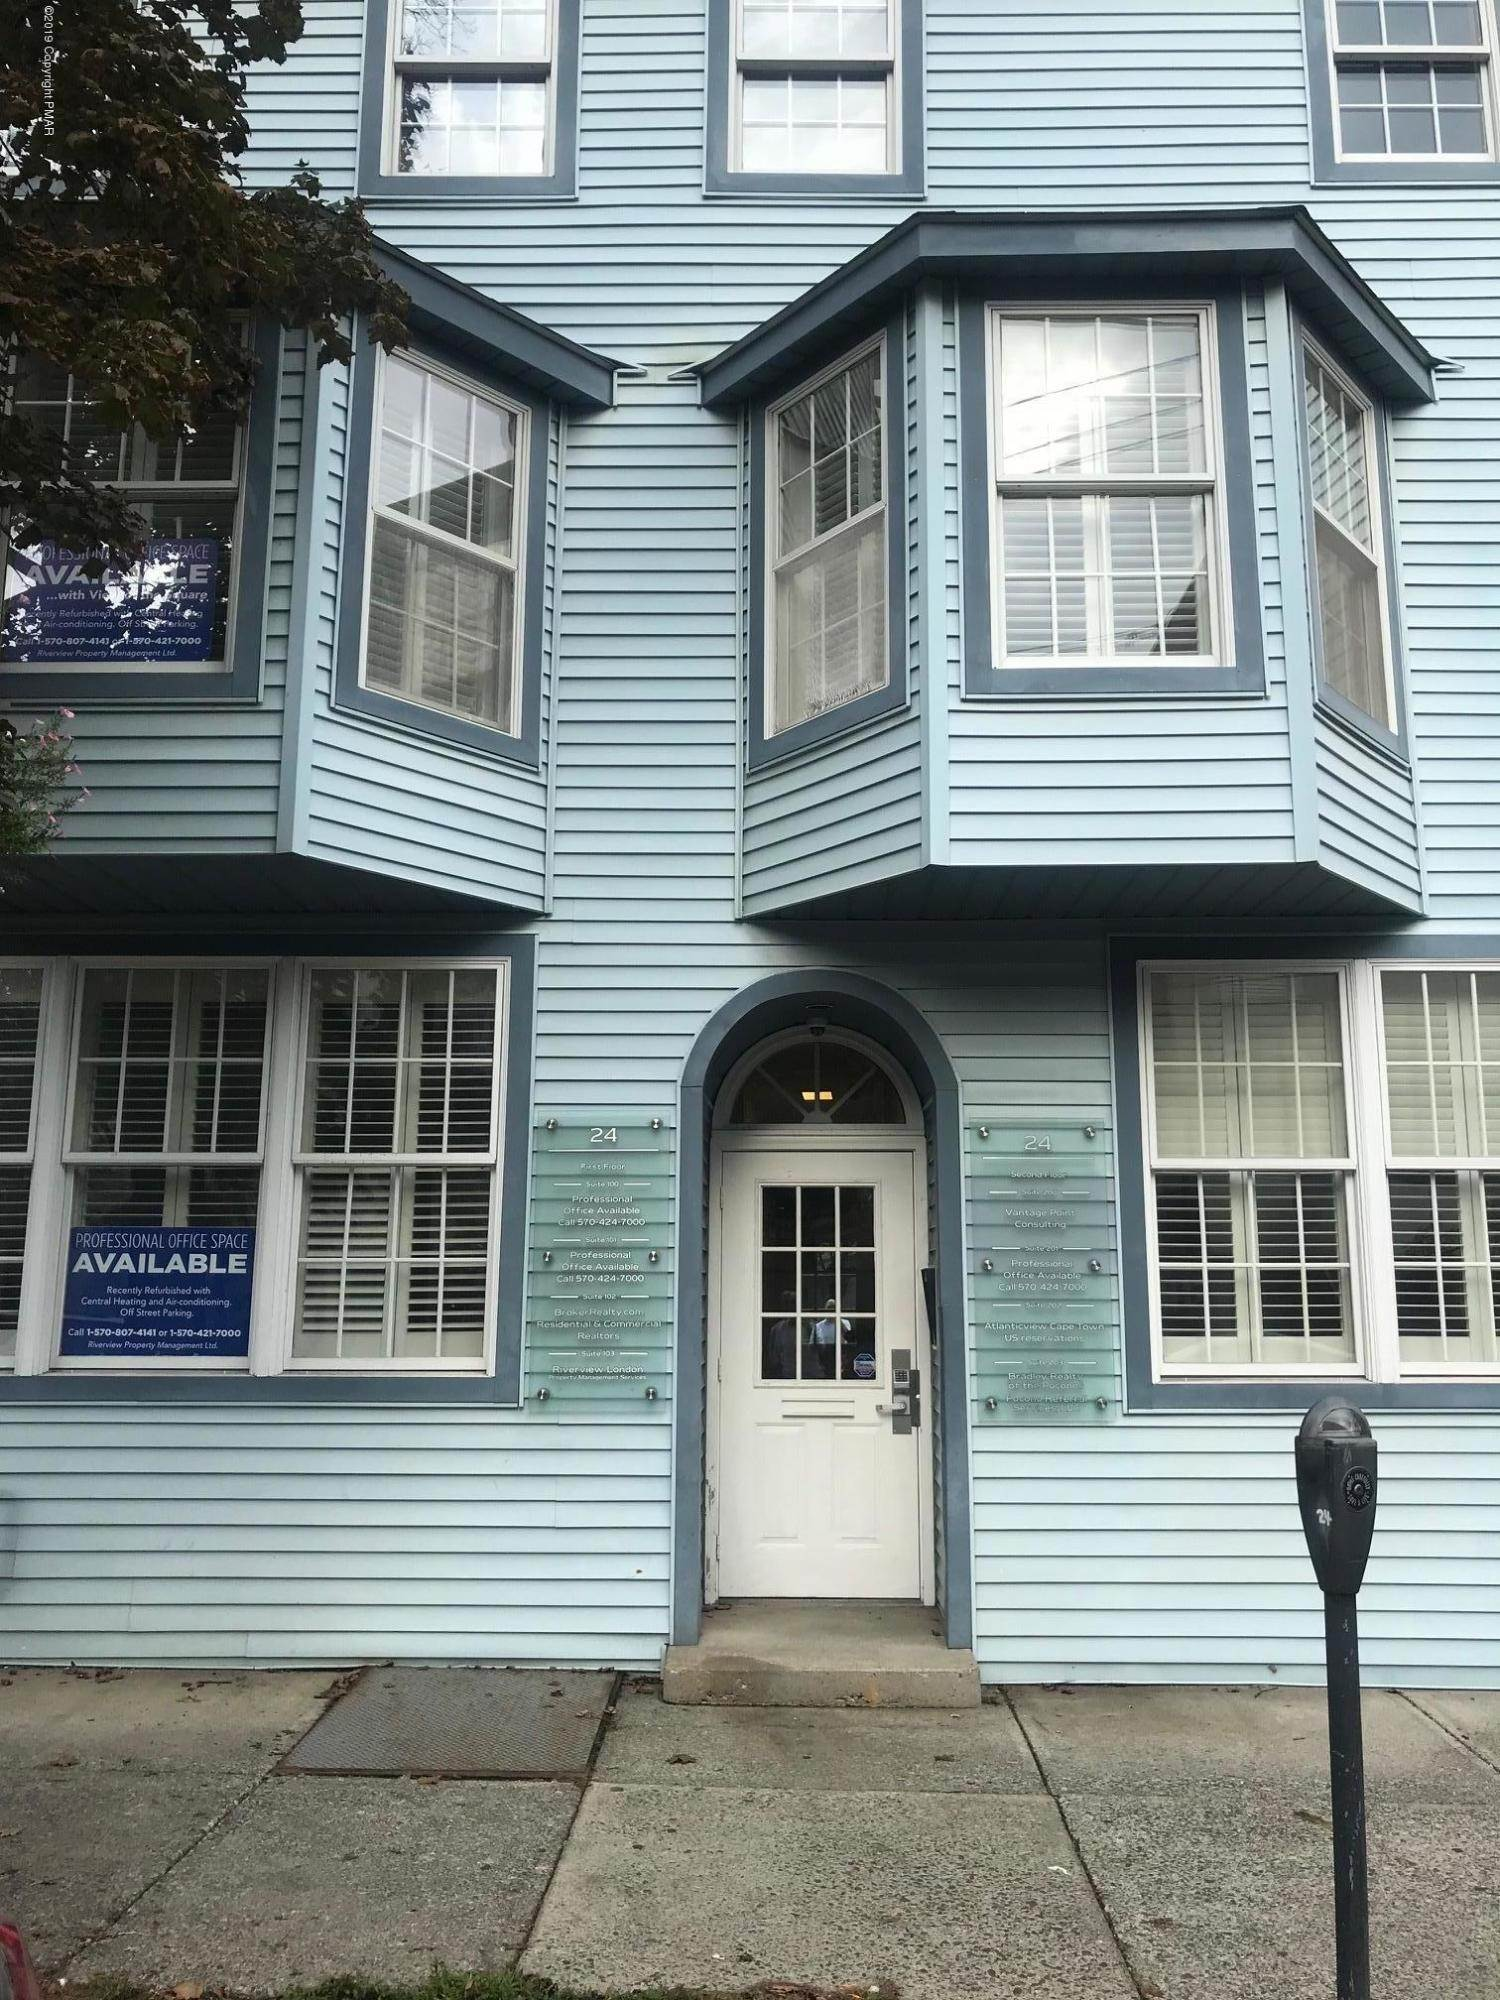 3. Commercial for Sale at 24 N 7th St Stroudsburg, Pennsylvania 18360 United States